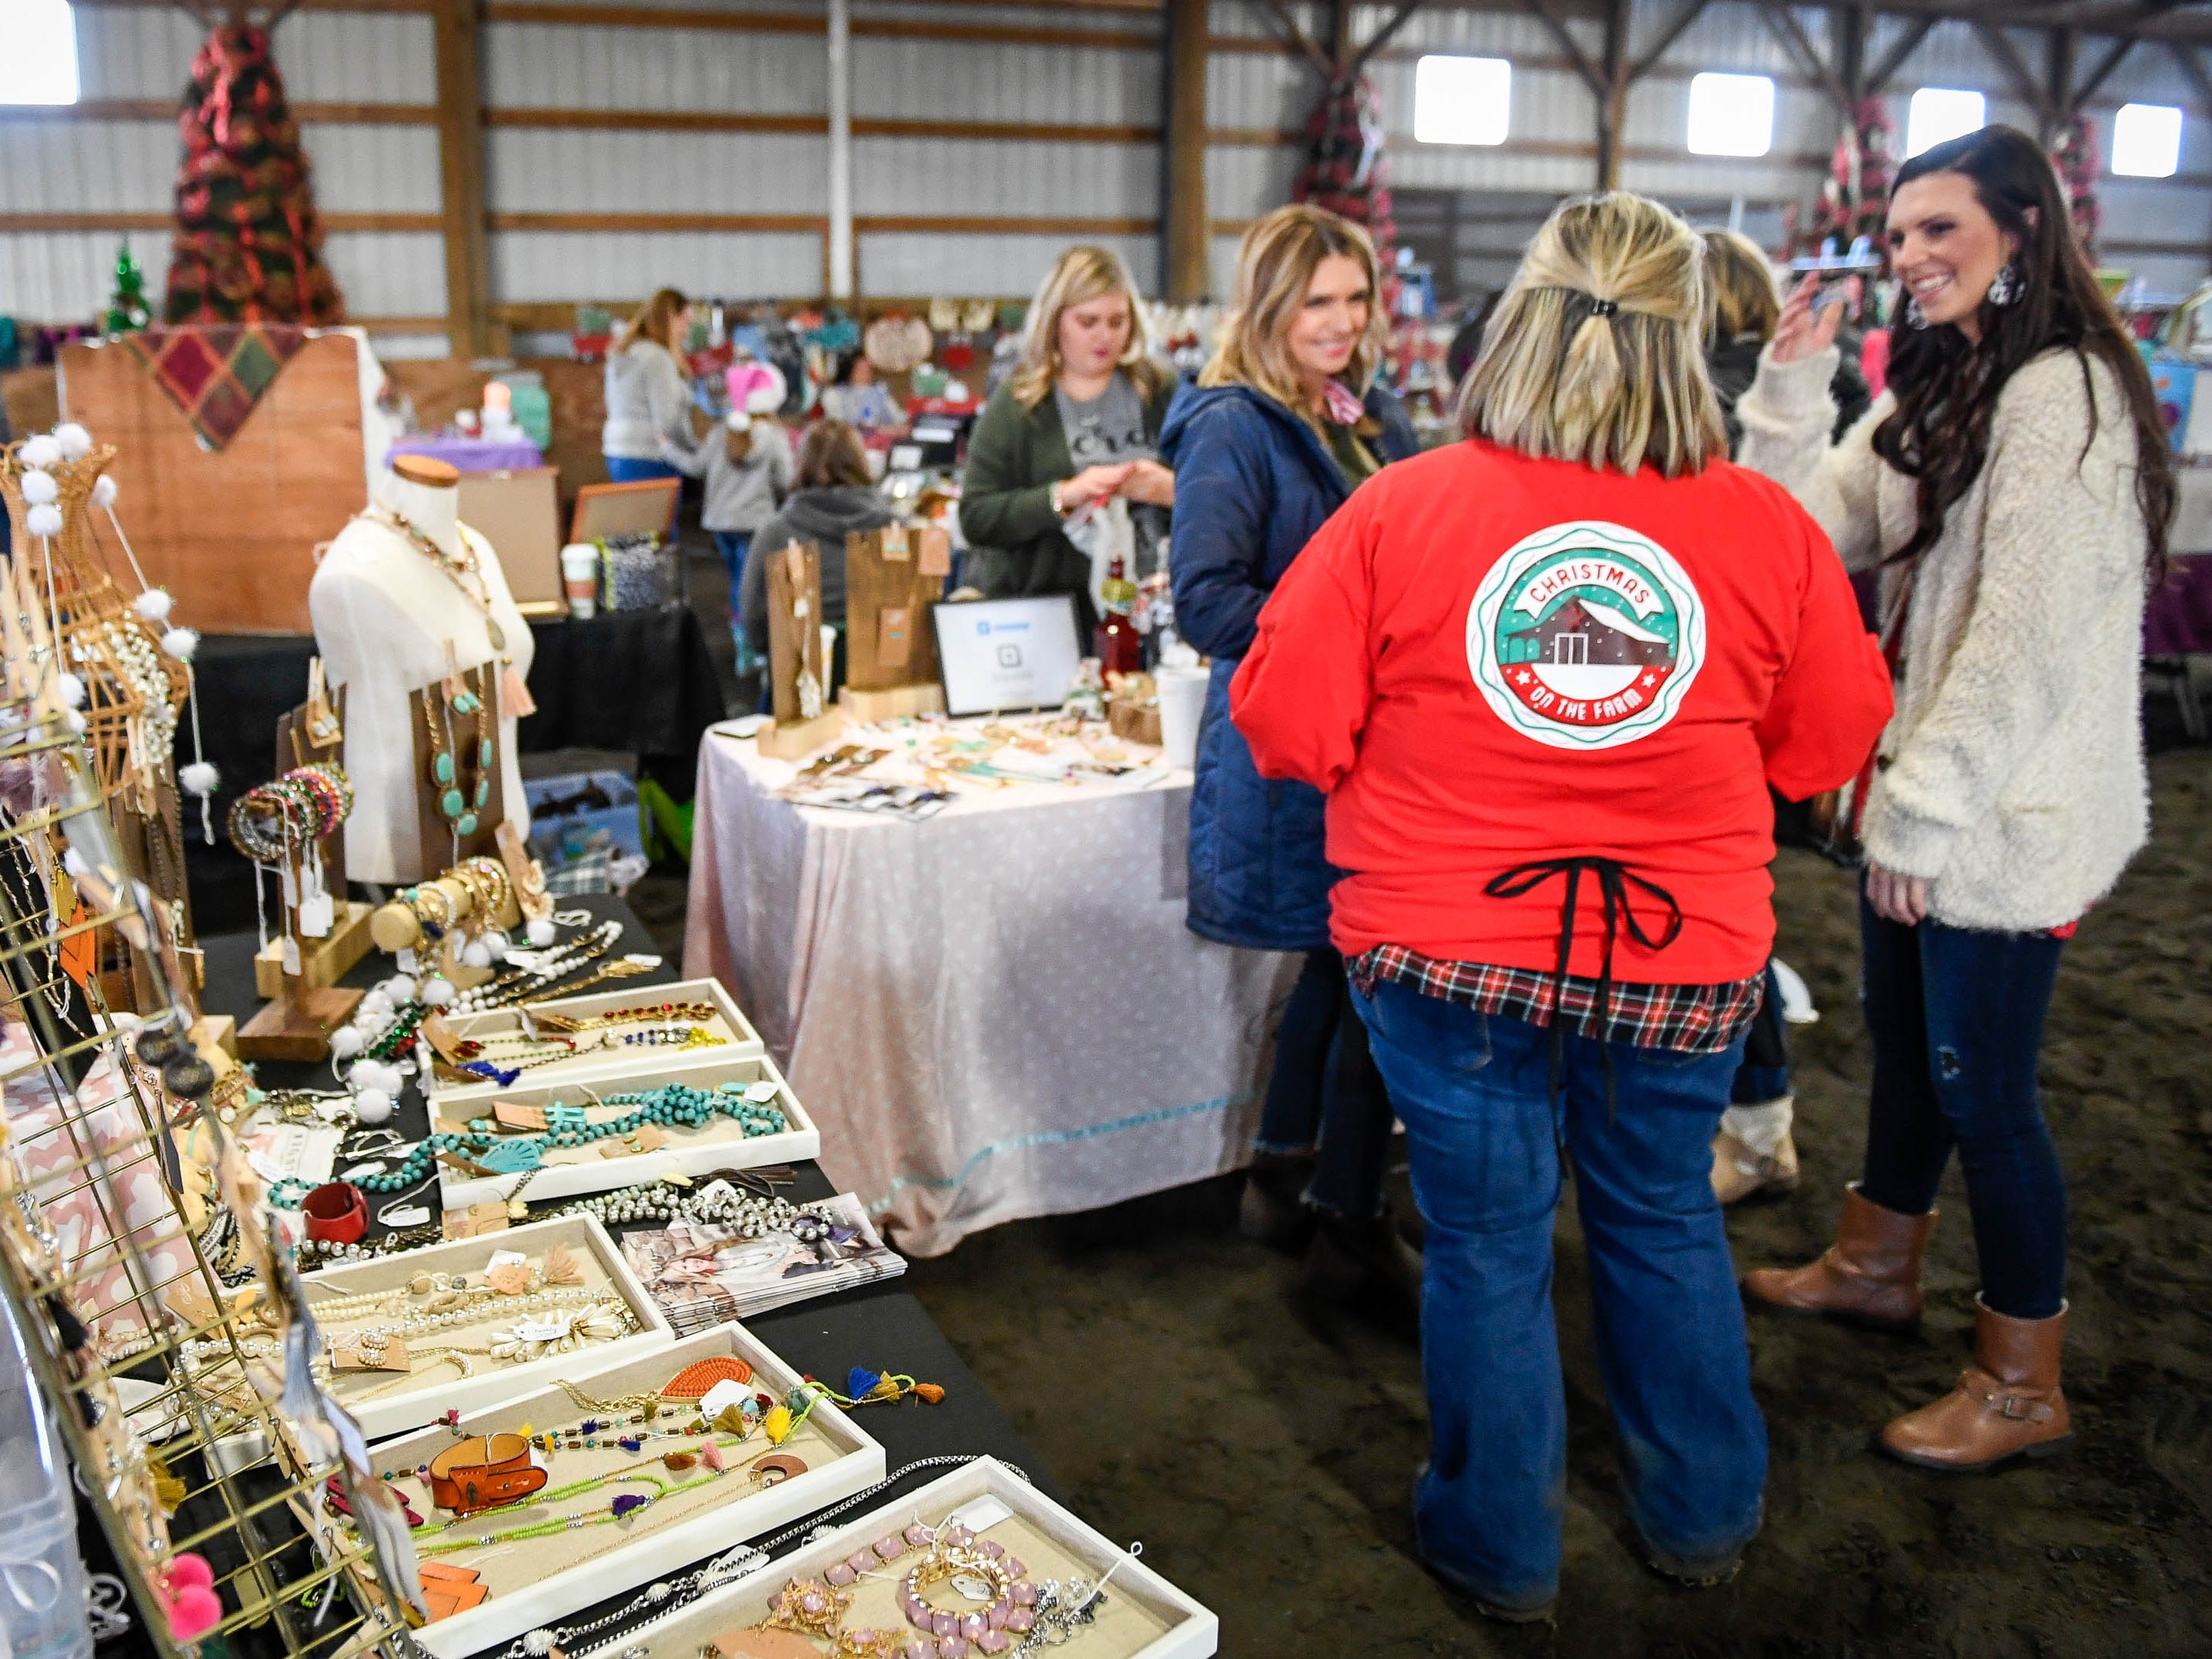 Holiday shoppers in a vendor mall at the Christmas on the farm fund raising event for the Healing Reins Therapeutic Riding program Saturday. The family friendly event features pony rides, hay rides and barbecue, November 24, 2018.